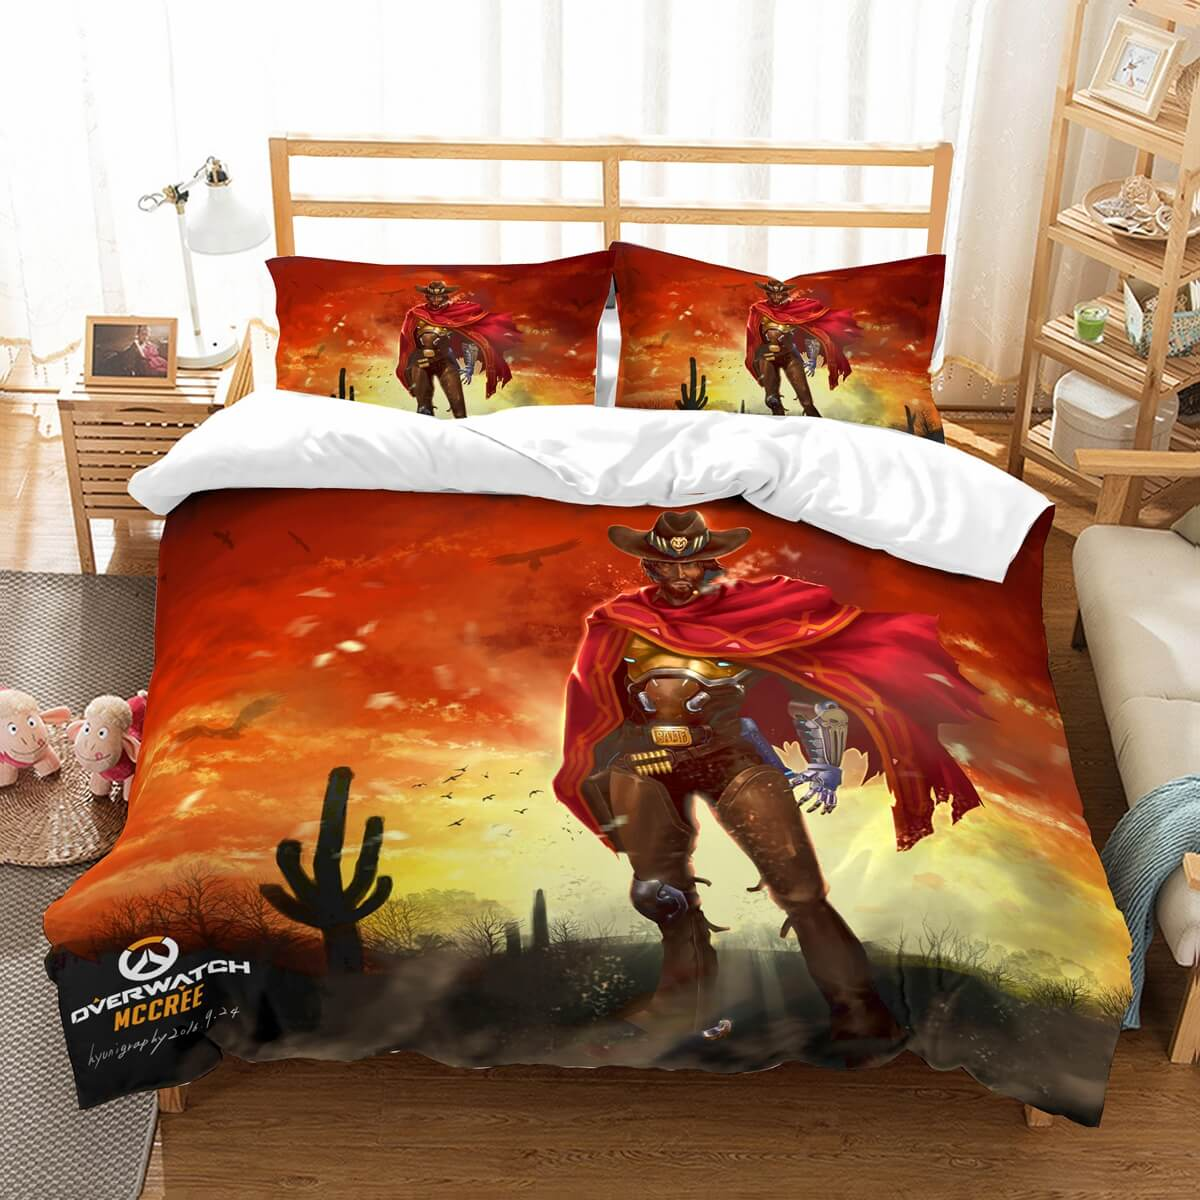 3D Customize Overwatch Mccree Bedding Set Duvet Cover Set Bedroom Set Bedlinen